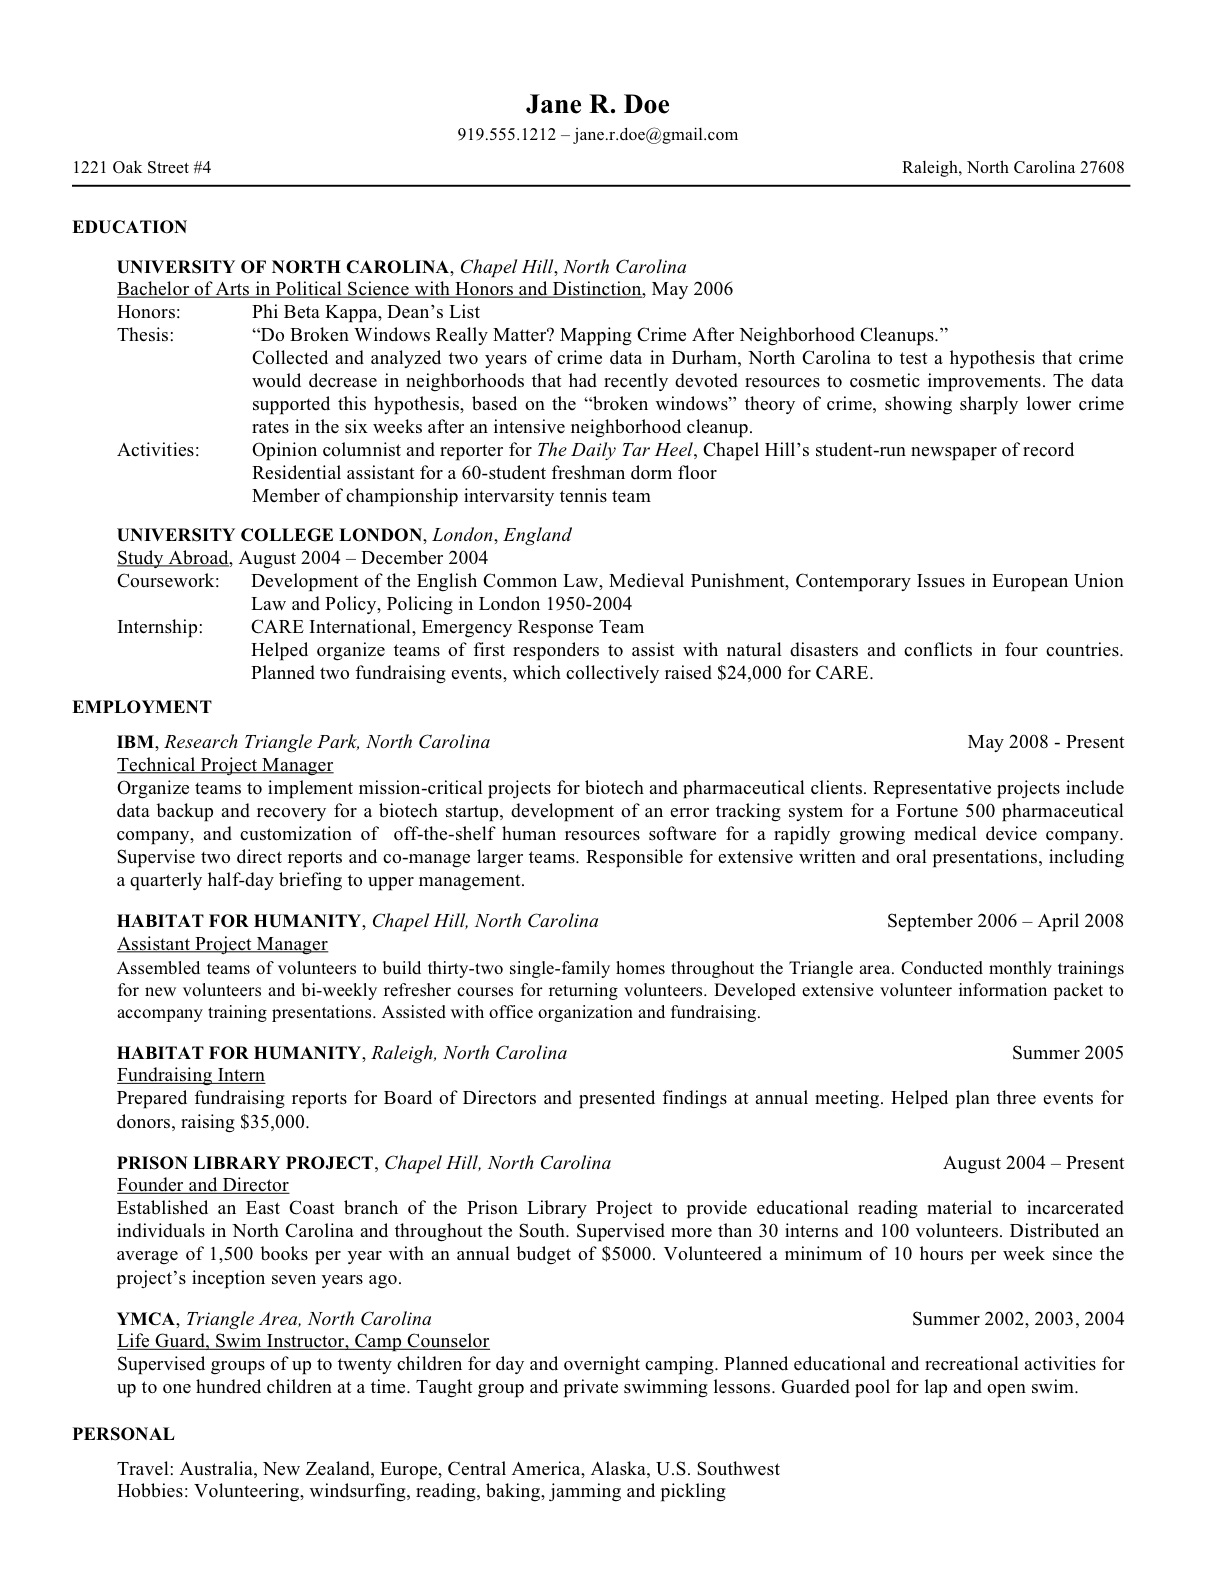 janes revised resume. Resume Example. Resume CV Cover Letter